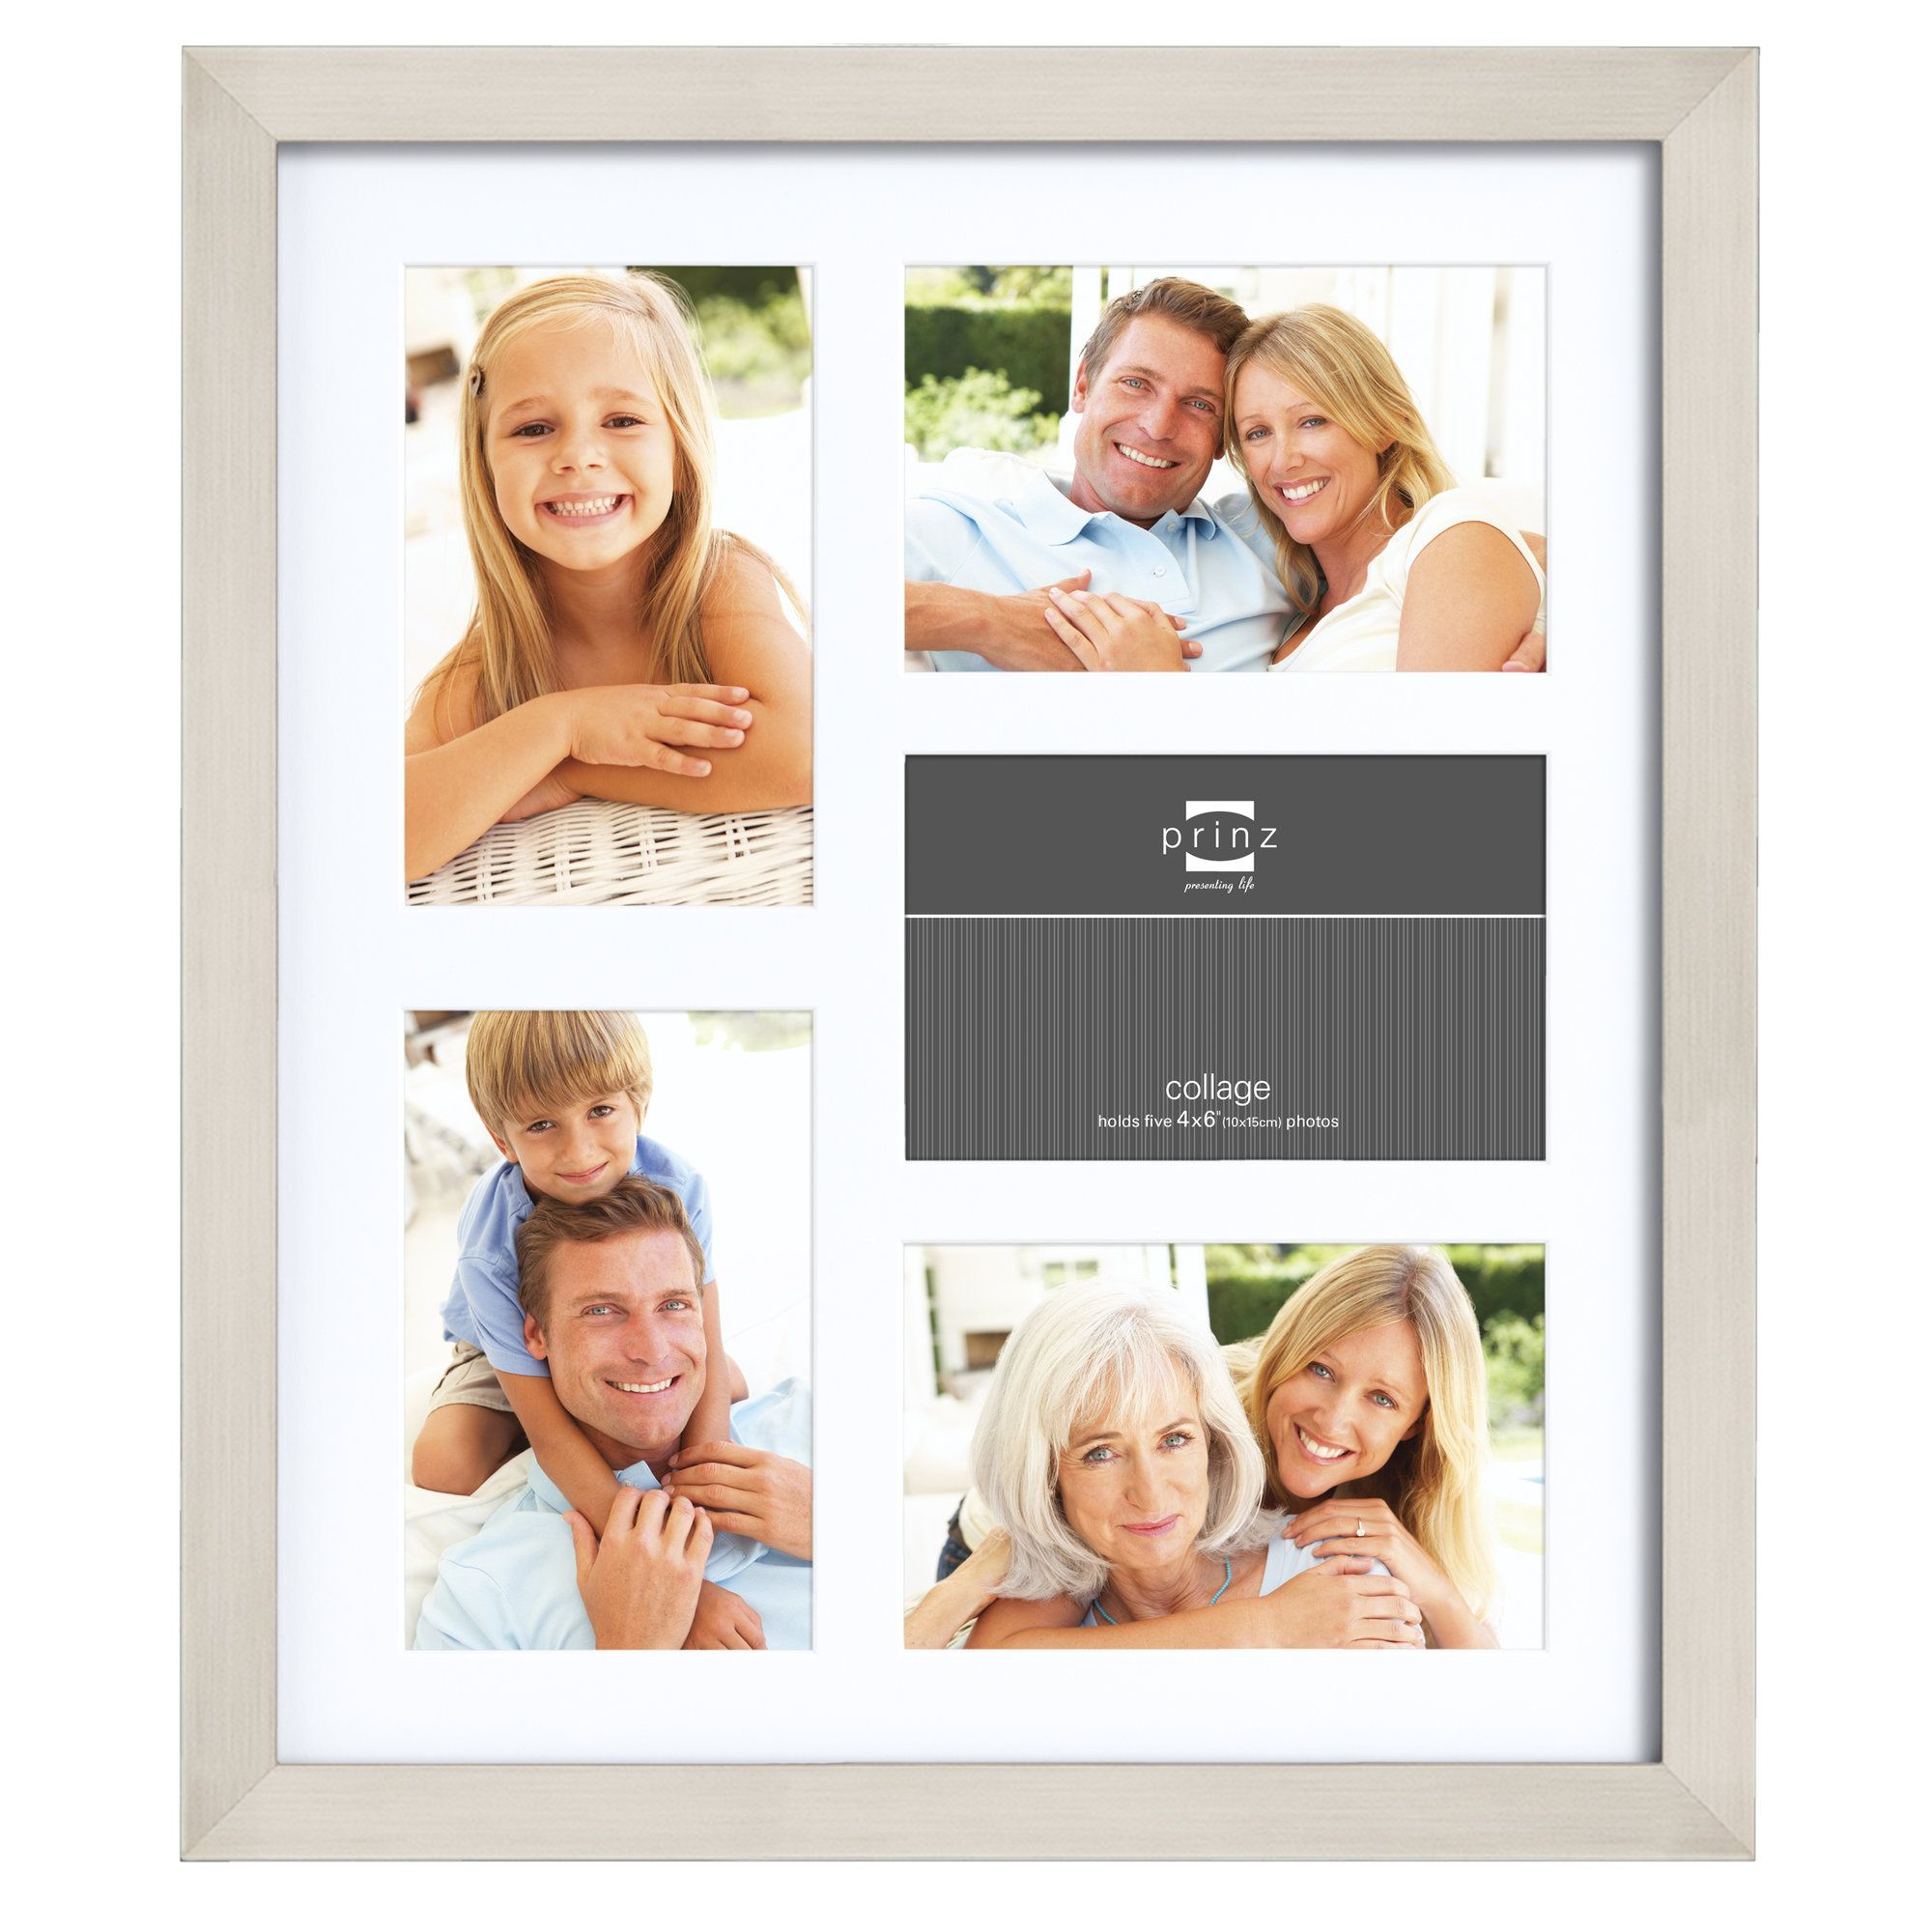 Five Opening Gallery Expressions Styrene Picture Frame | Products ...